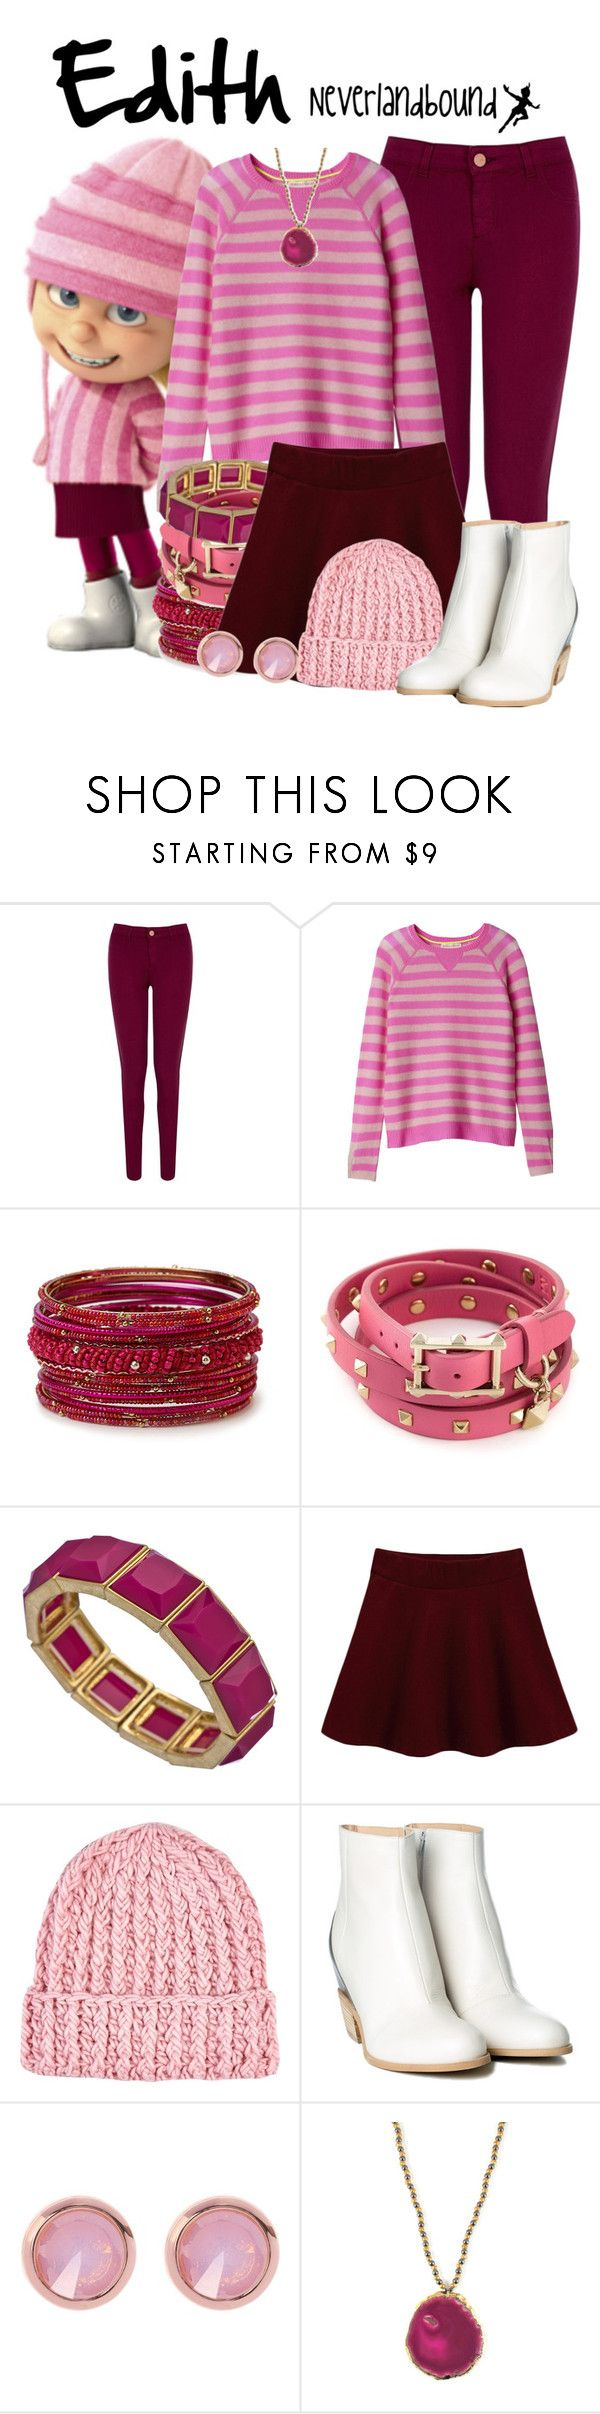 """Edith (Despicable Me) ~Neverlandbound"" by gallifreyangryffindor ❤ liked on Polyvore featuring Oasis, Rebecca Taylor, Forever 21, Valentino, Danielle Stevens, River Island, MM6 Maison Margiela, Ted Baker, Amanda Marcucci and WALL"